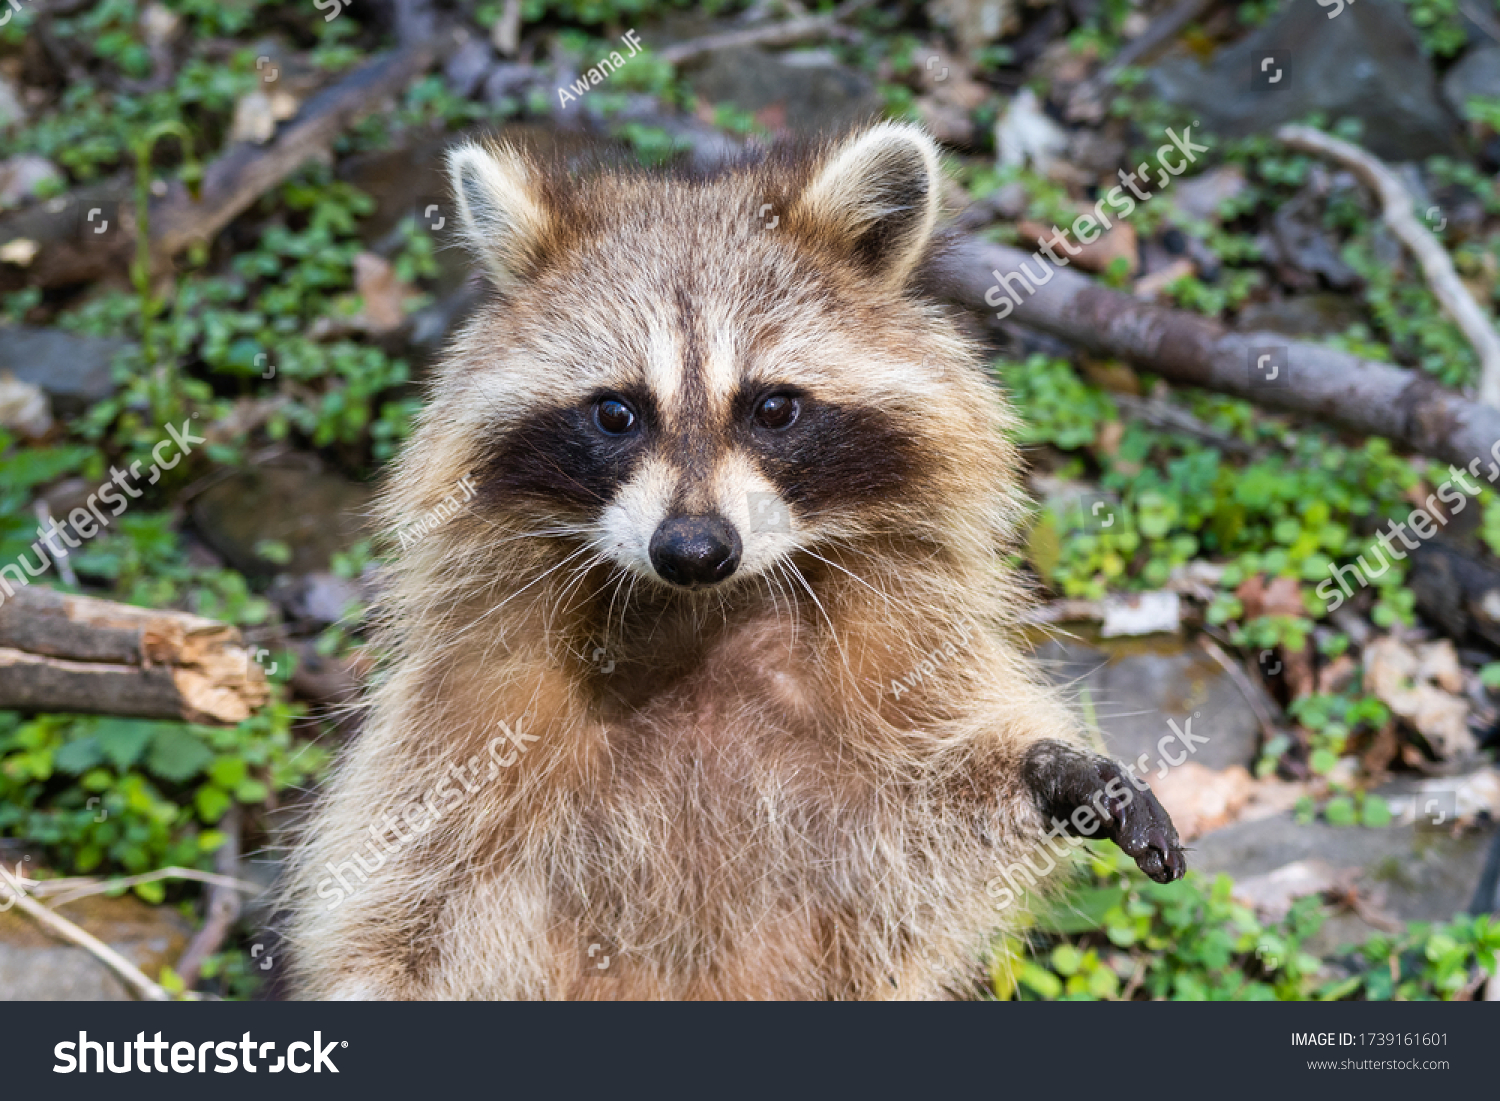 stock-photo-a-wild-raccoon-inside-the-fo